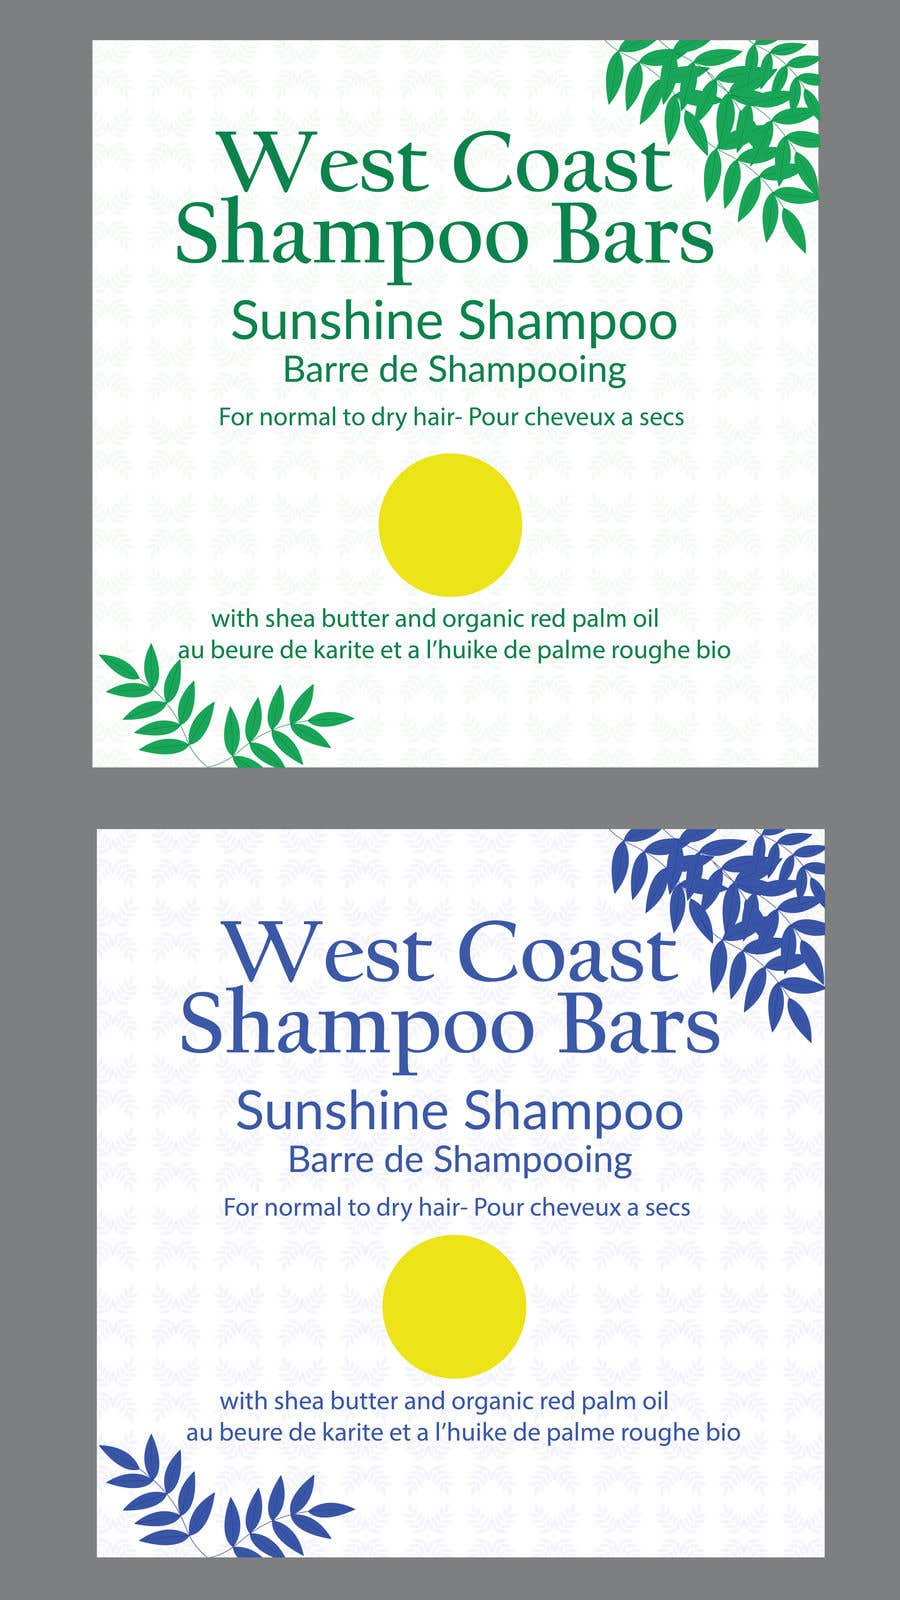 Bài tham dự cuộc thi #                                        4                                      cho                                         I need design help for packaging for shampoo and conditioner bars